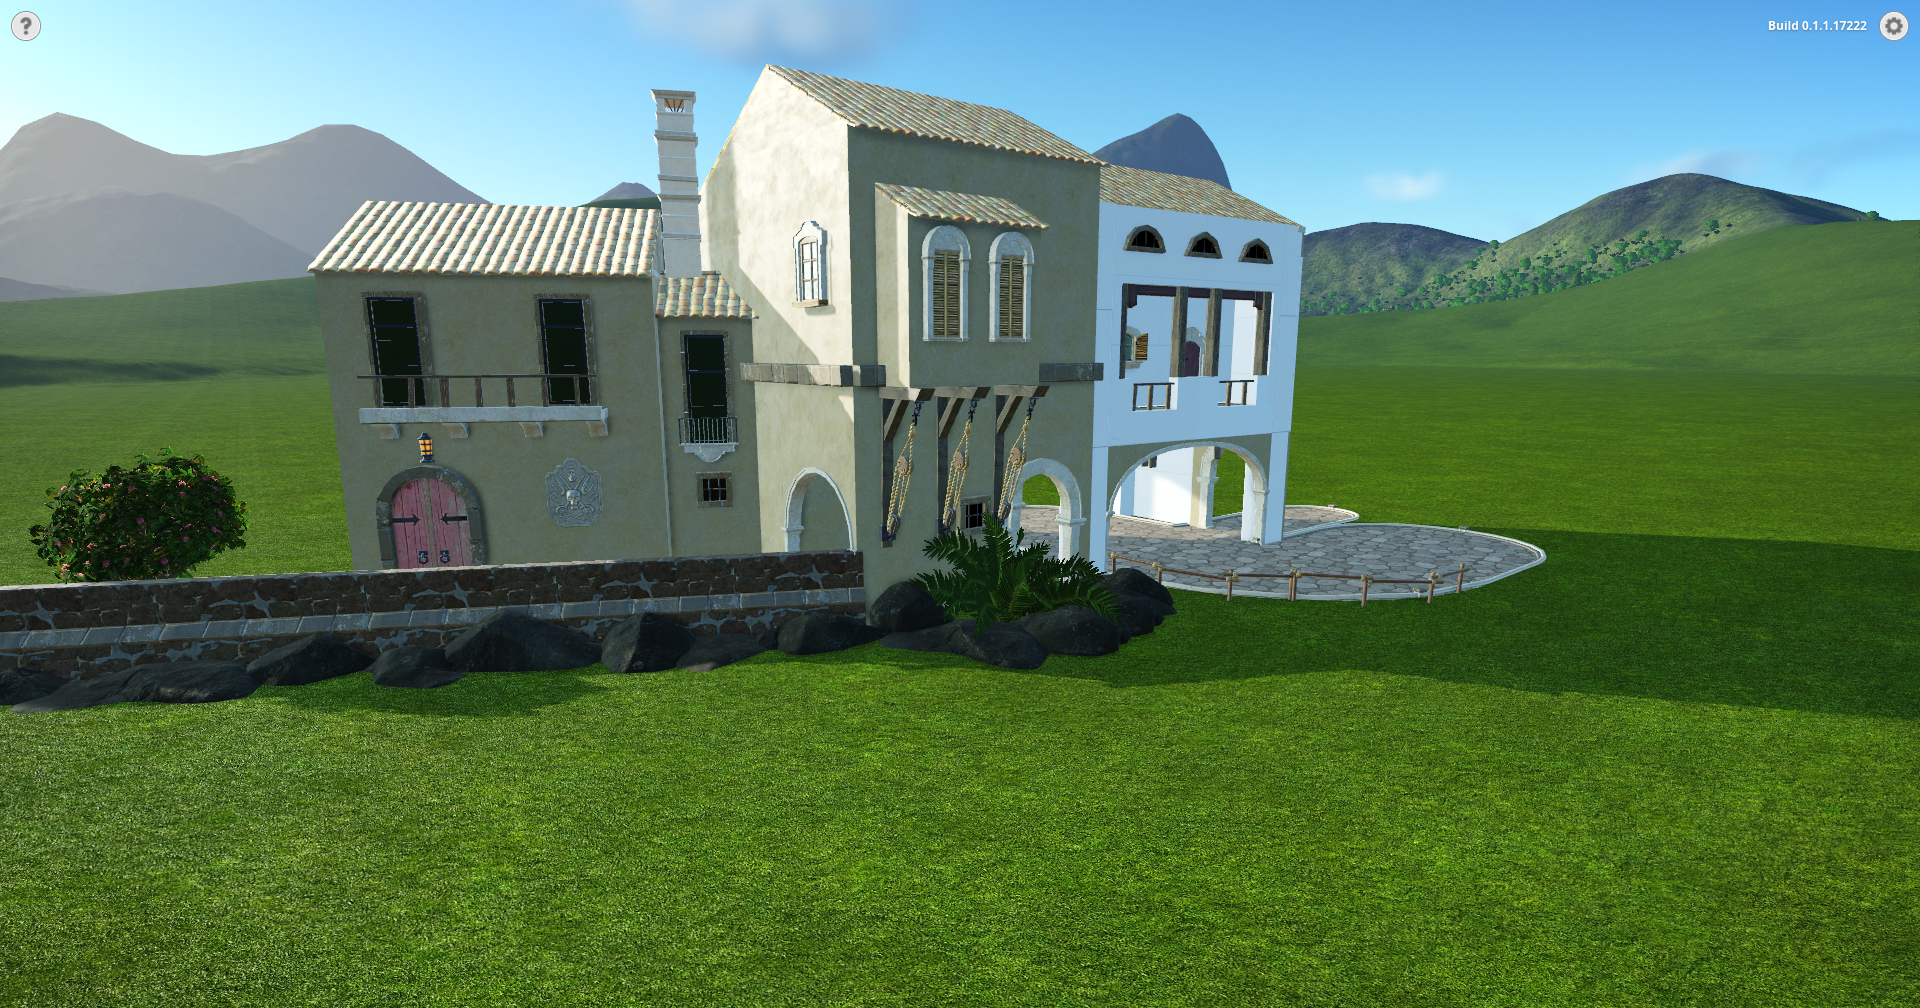 planetcoaster2016-03-qwpze.png